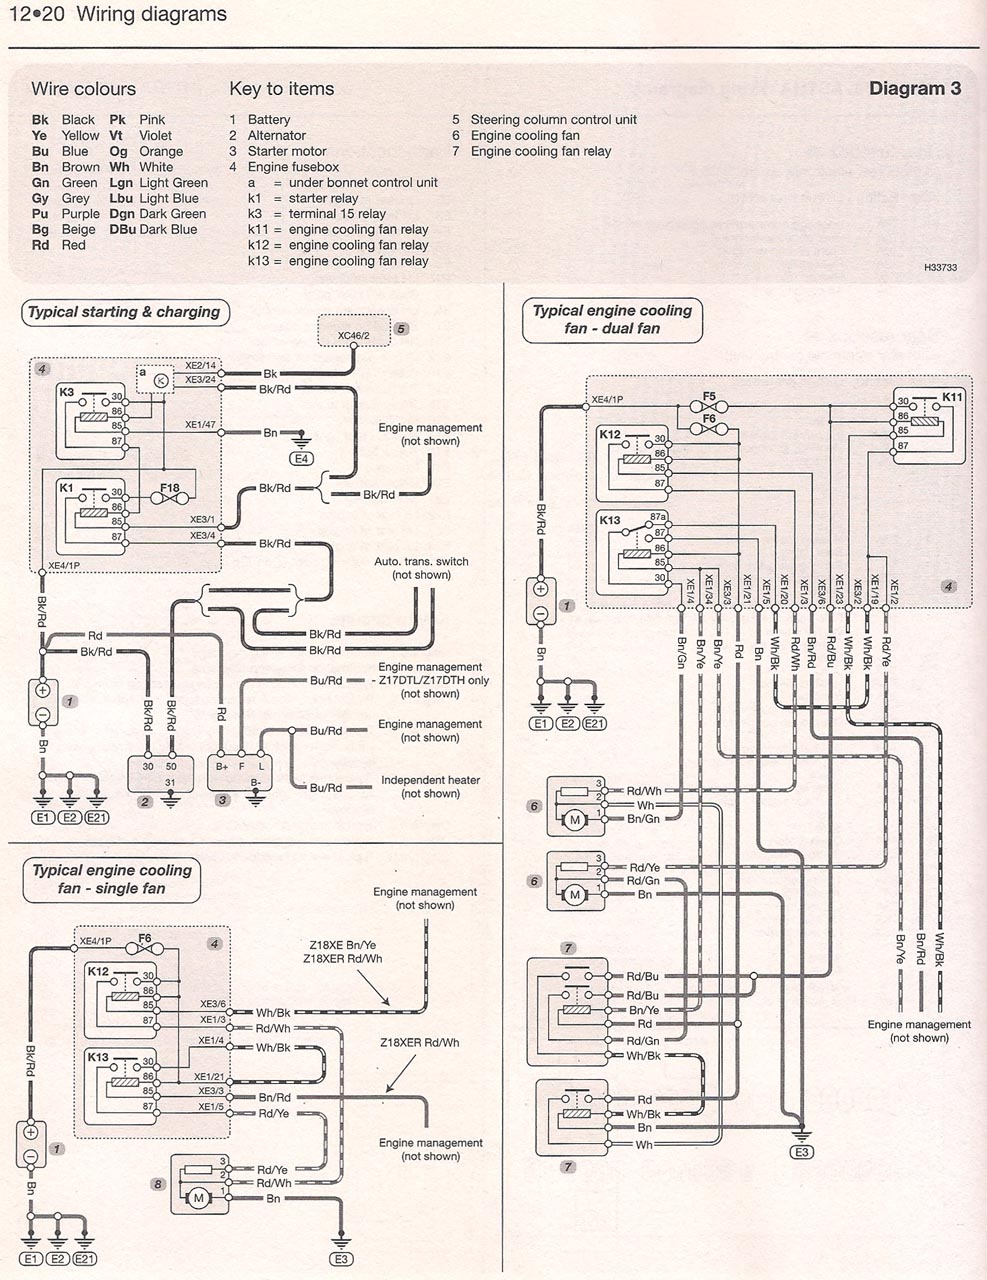 9644d opel vectra b radio wiring diagram | wiring resources  wiring resources